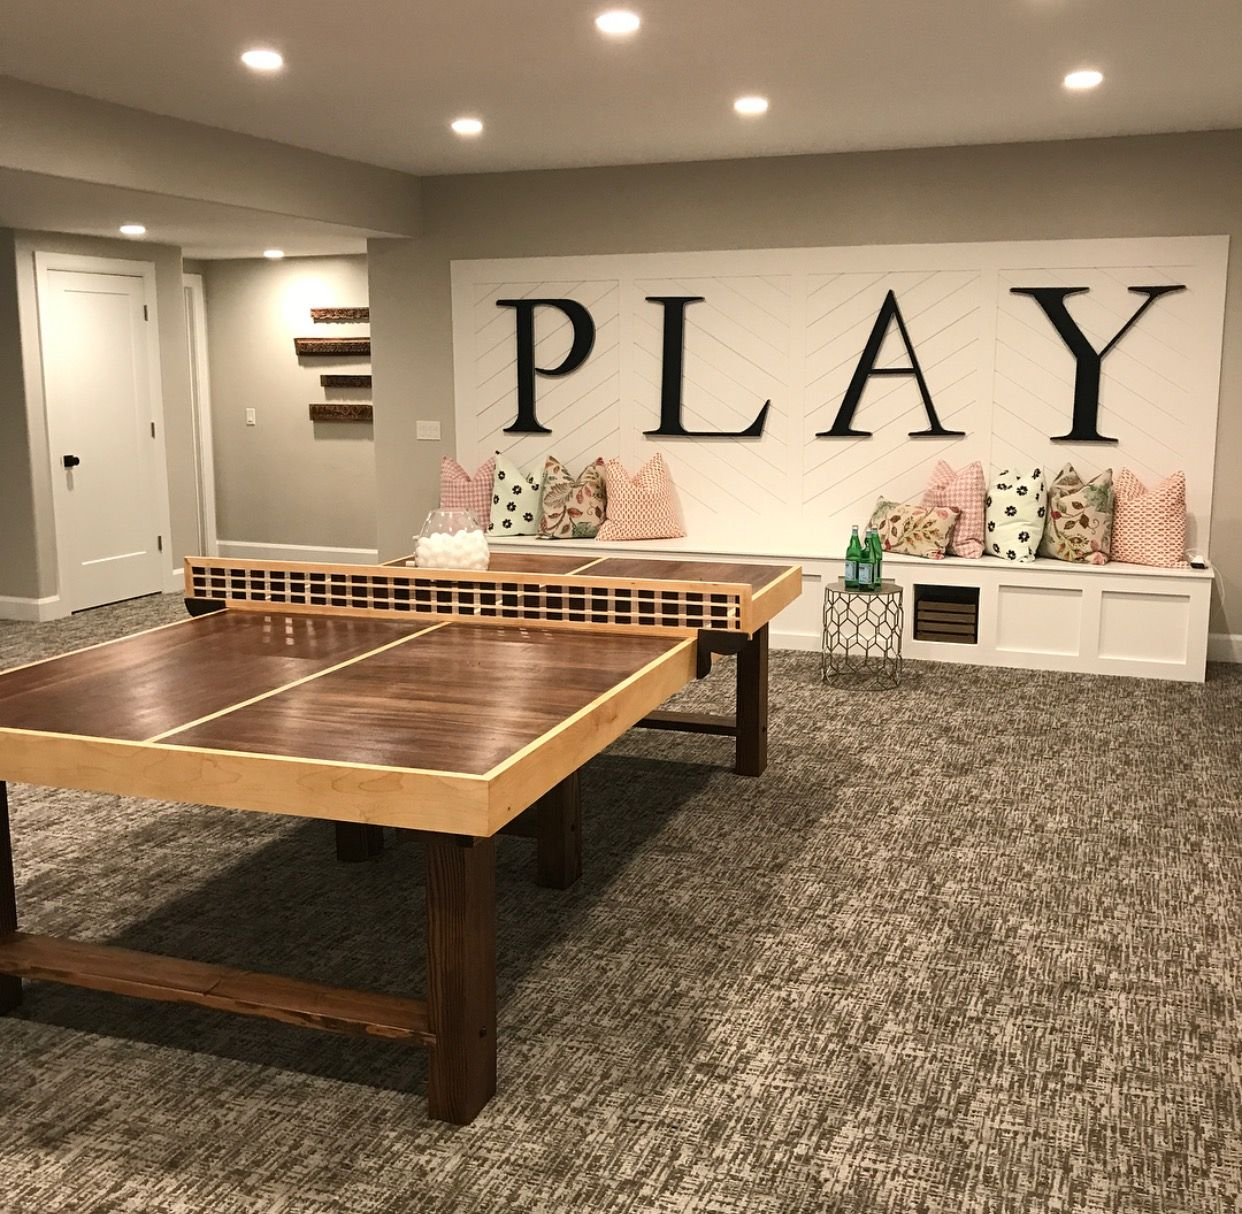 20 amazing unfinished basement ideas you should try big letters play areas and bench - Unfinished basement design ...